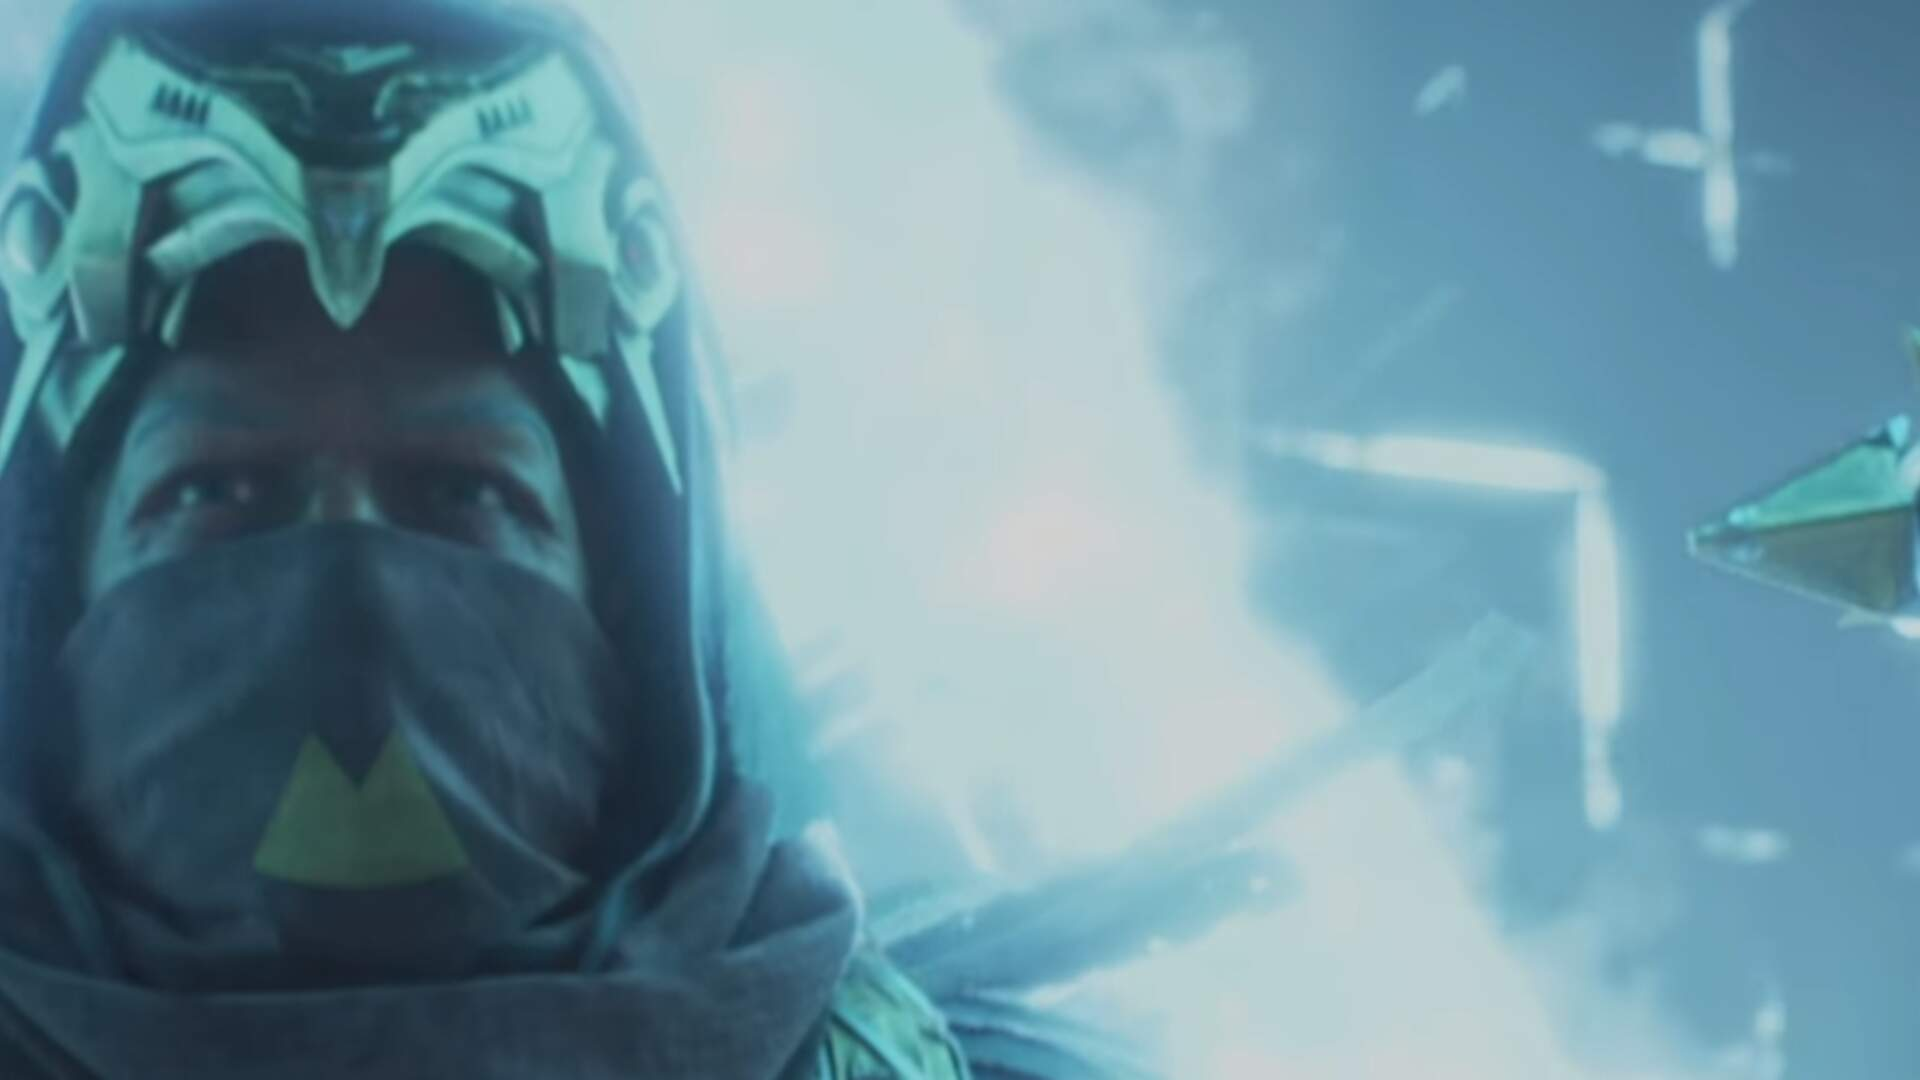 Destiny 2 Expansion 'The Curse of Osiris' Introduces New Characters and Level Caps